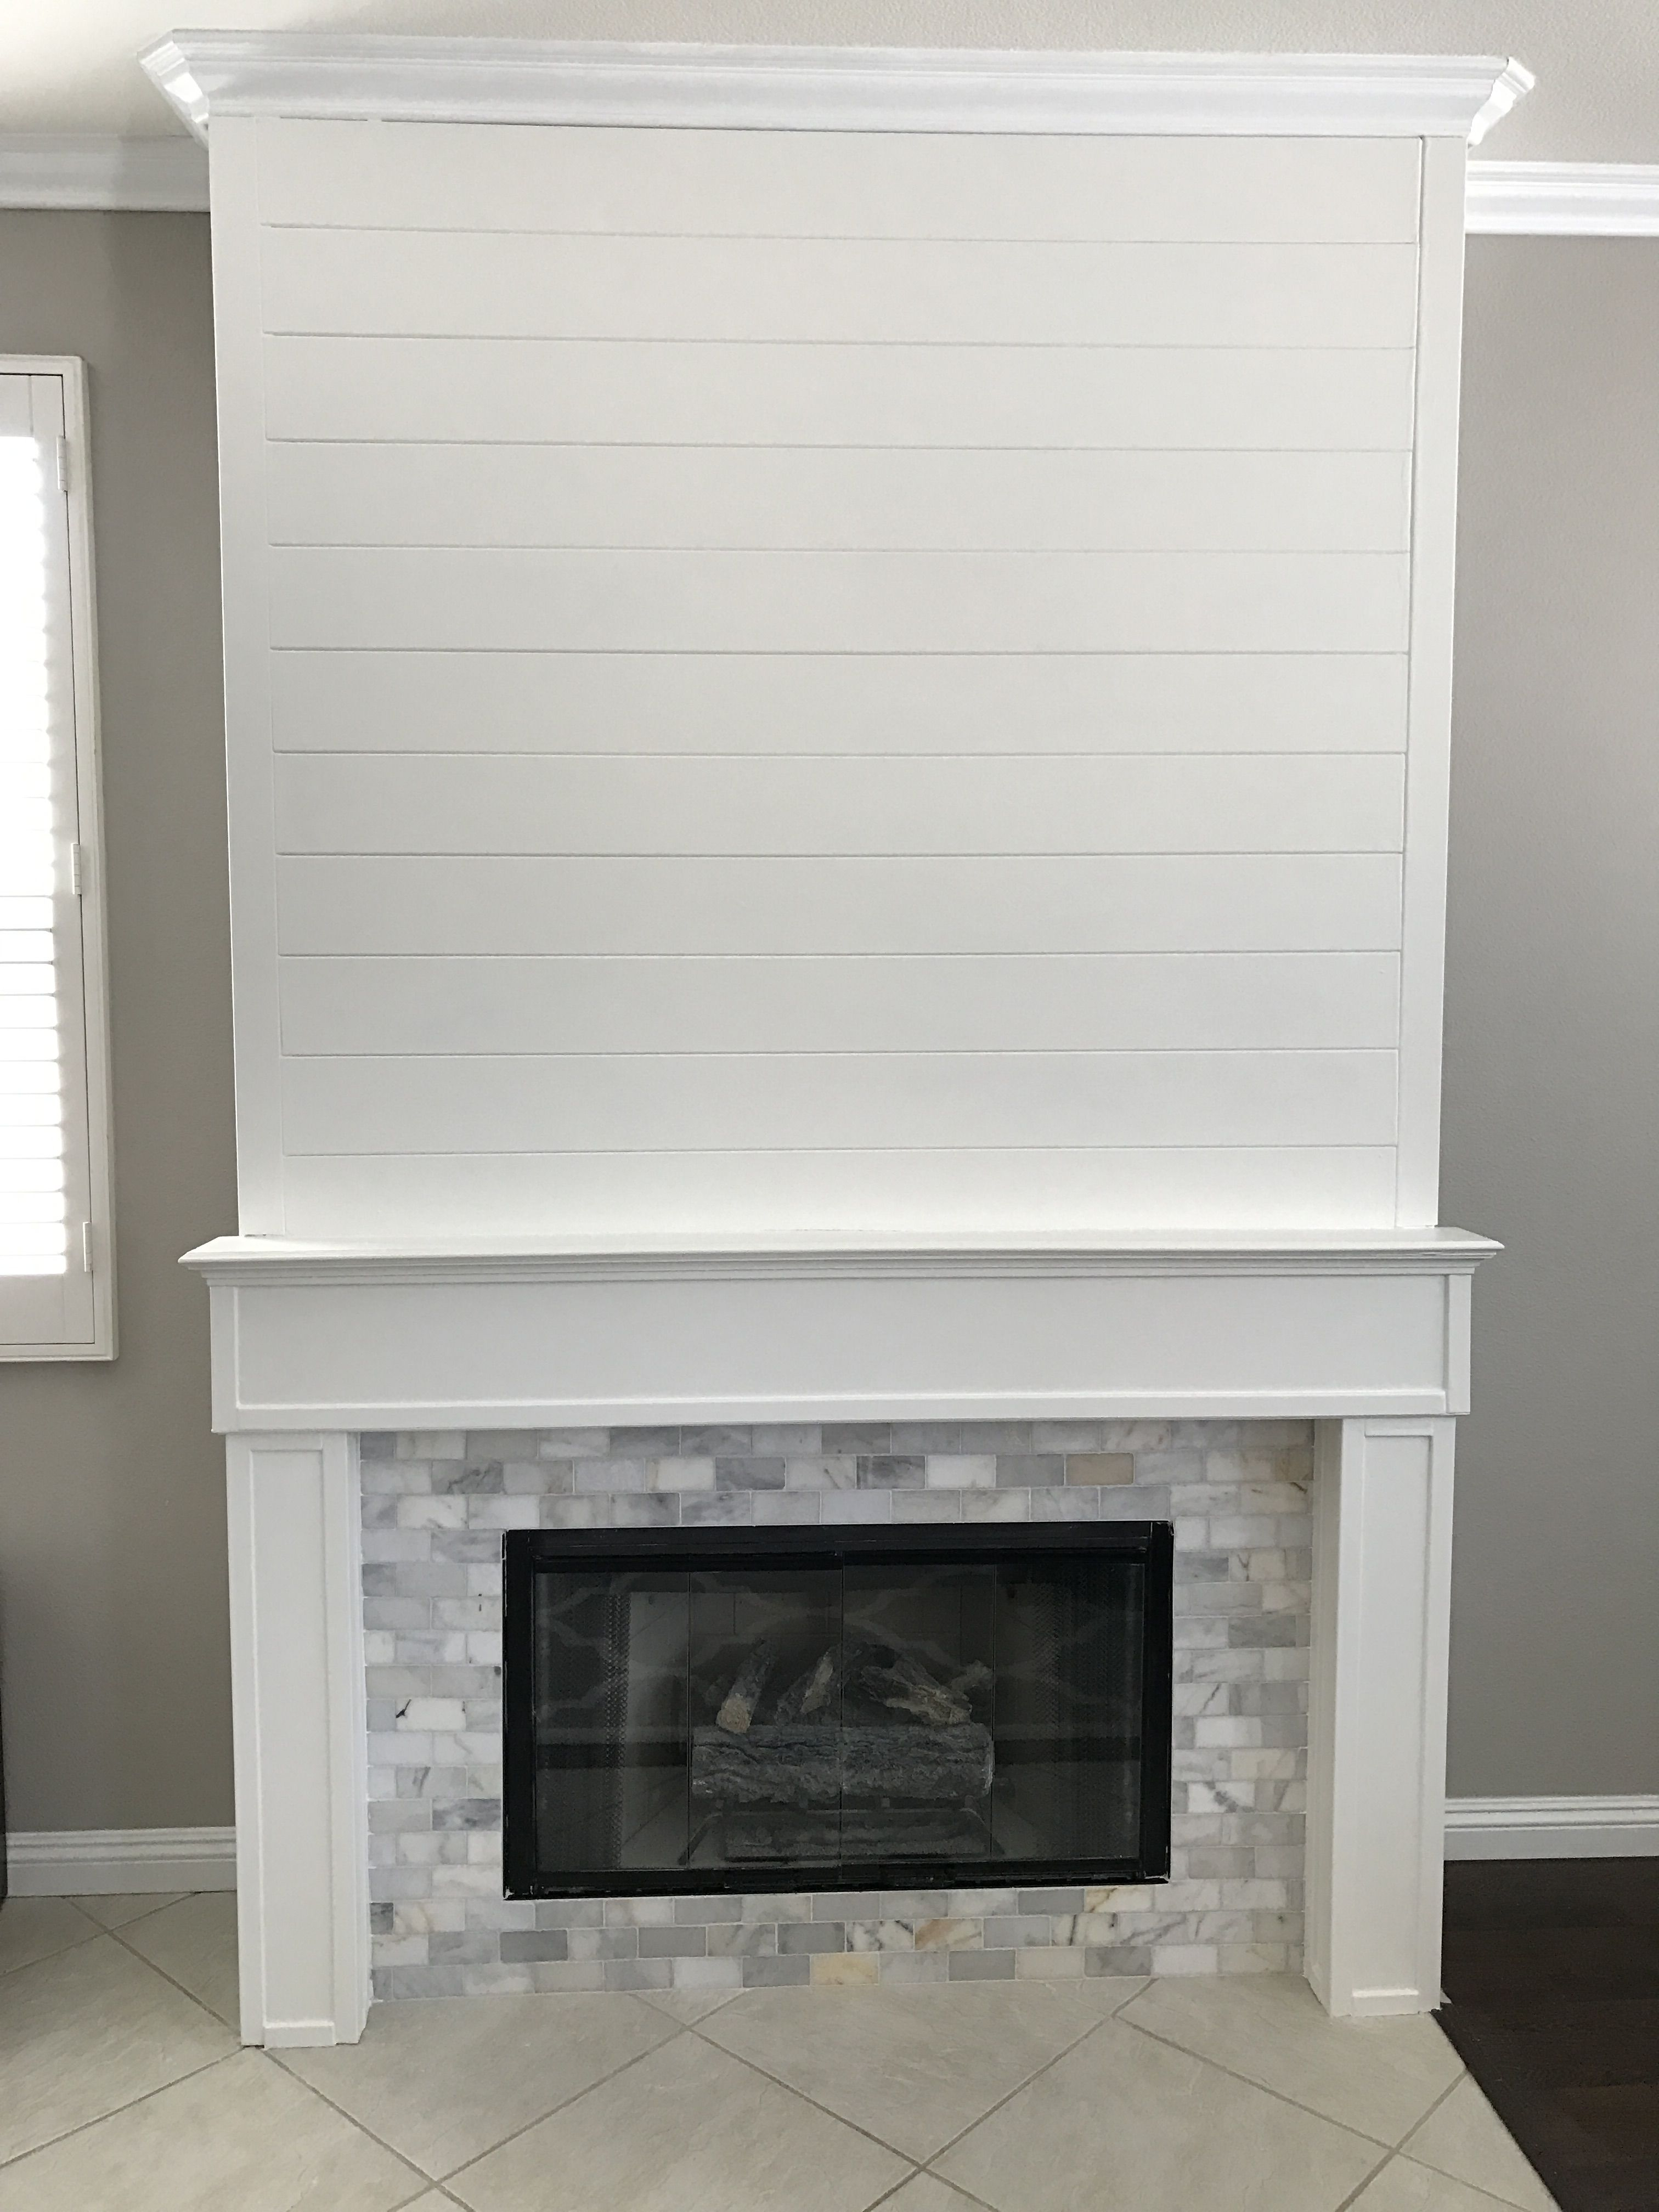 Shiplap And Marble Tile Fireplace Corner Fireplace Fireplace Surrounds Fireplace Tile